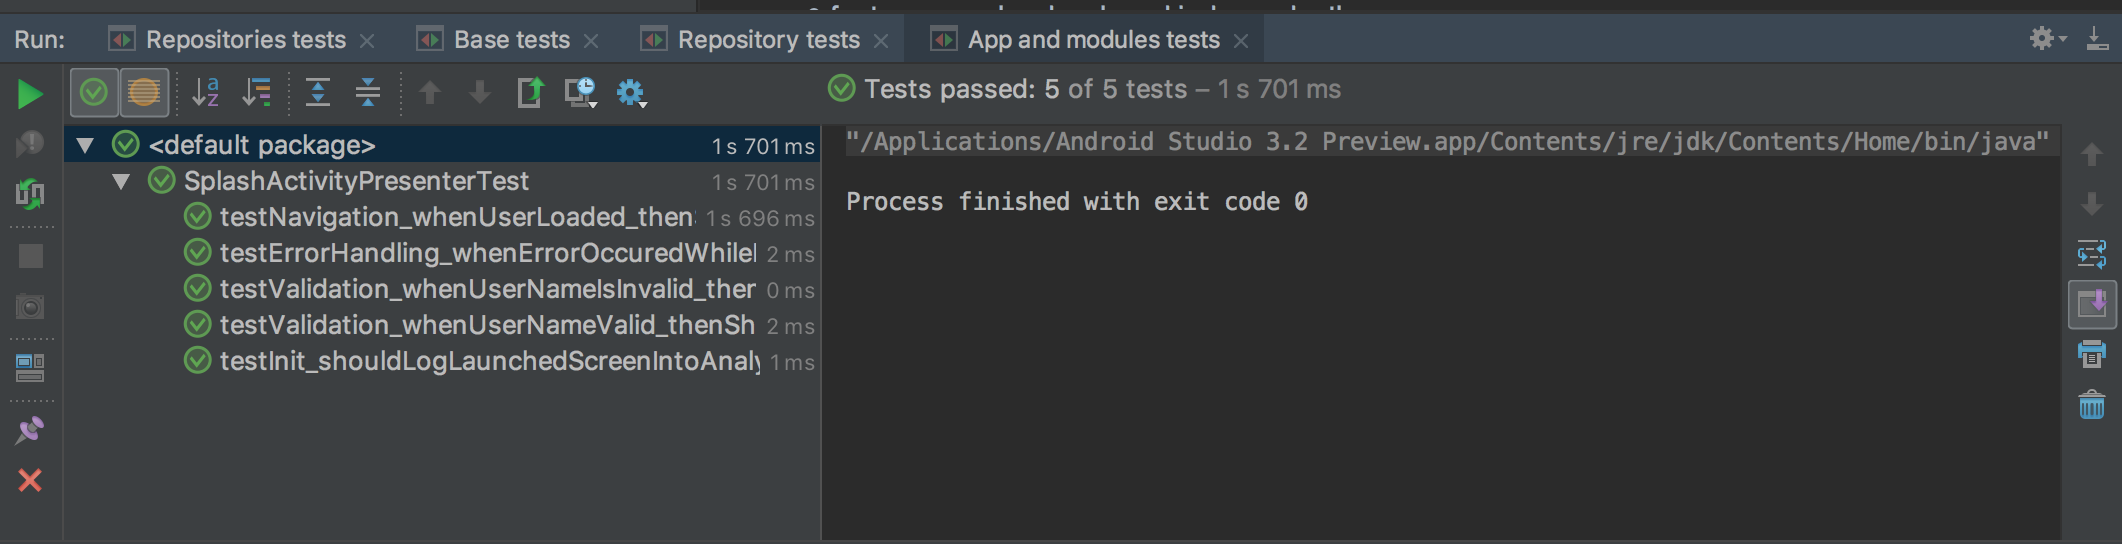 All tests sequential